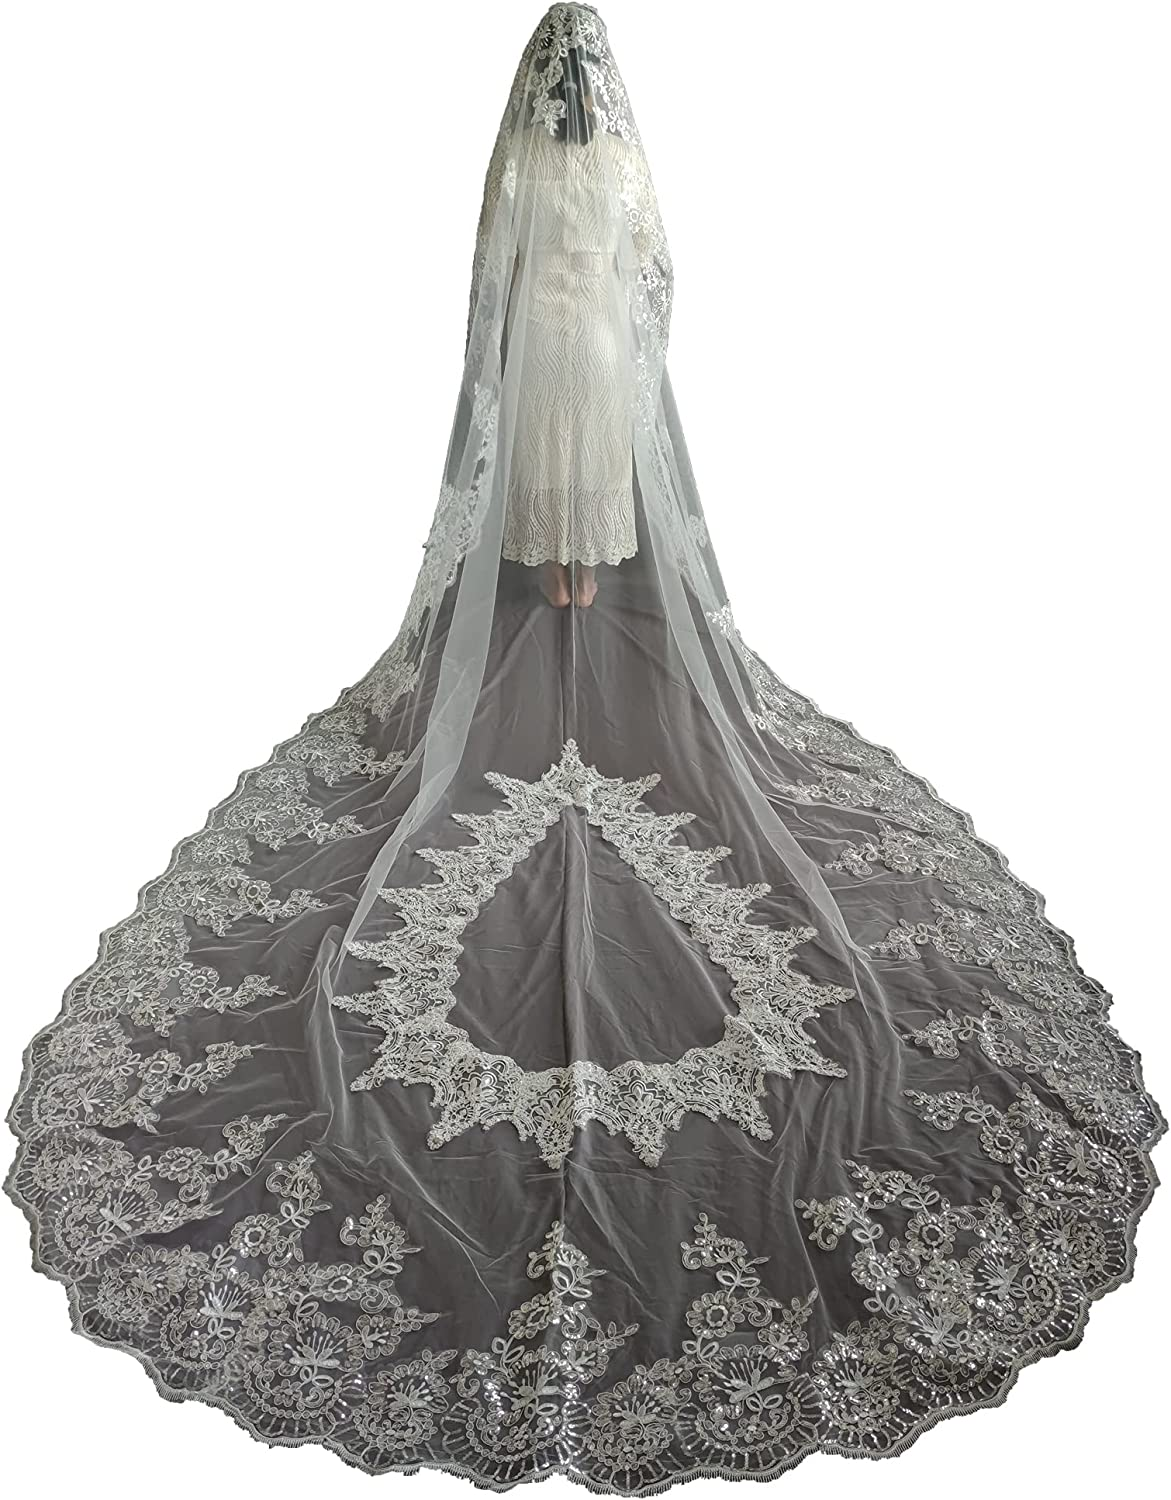 Gorgeous Faithclover Wedding Veils Cathedral Length Sequin Appliques Lace Max 44% OFF